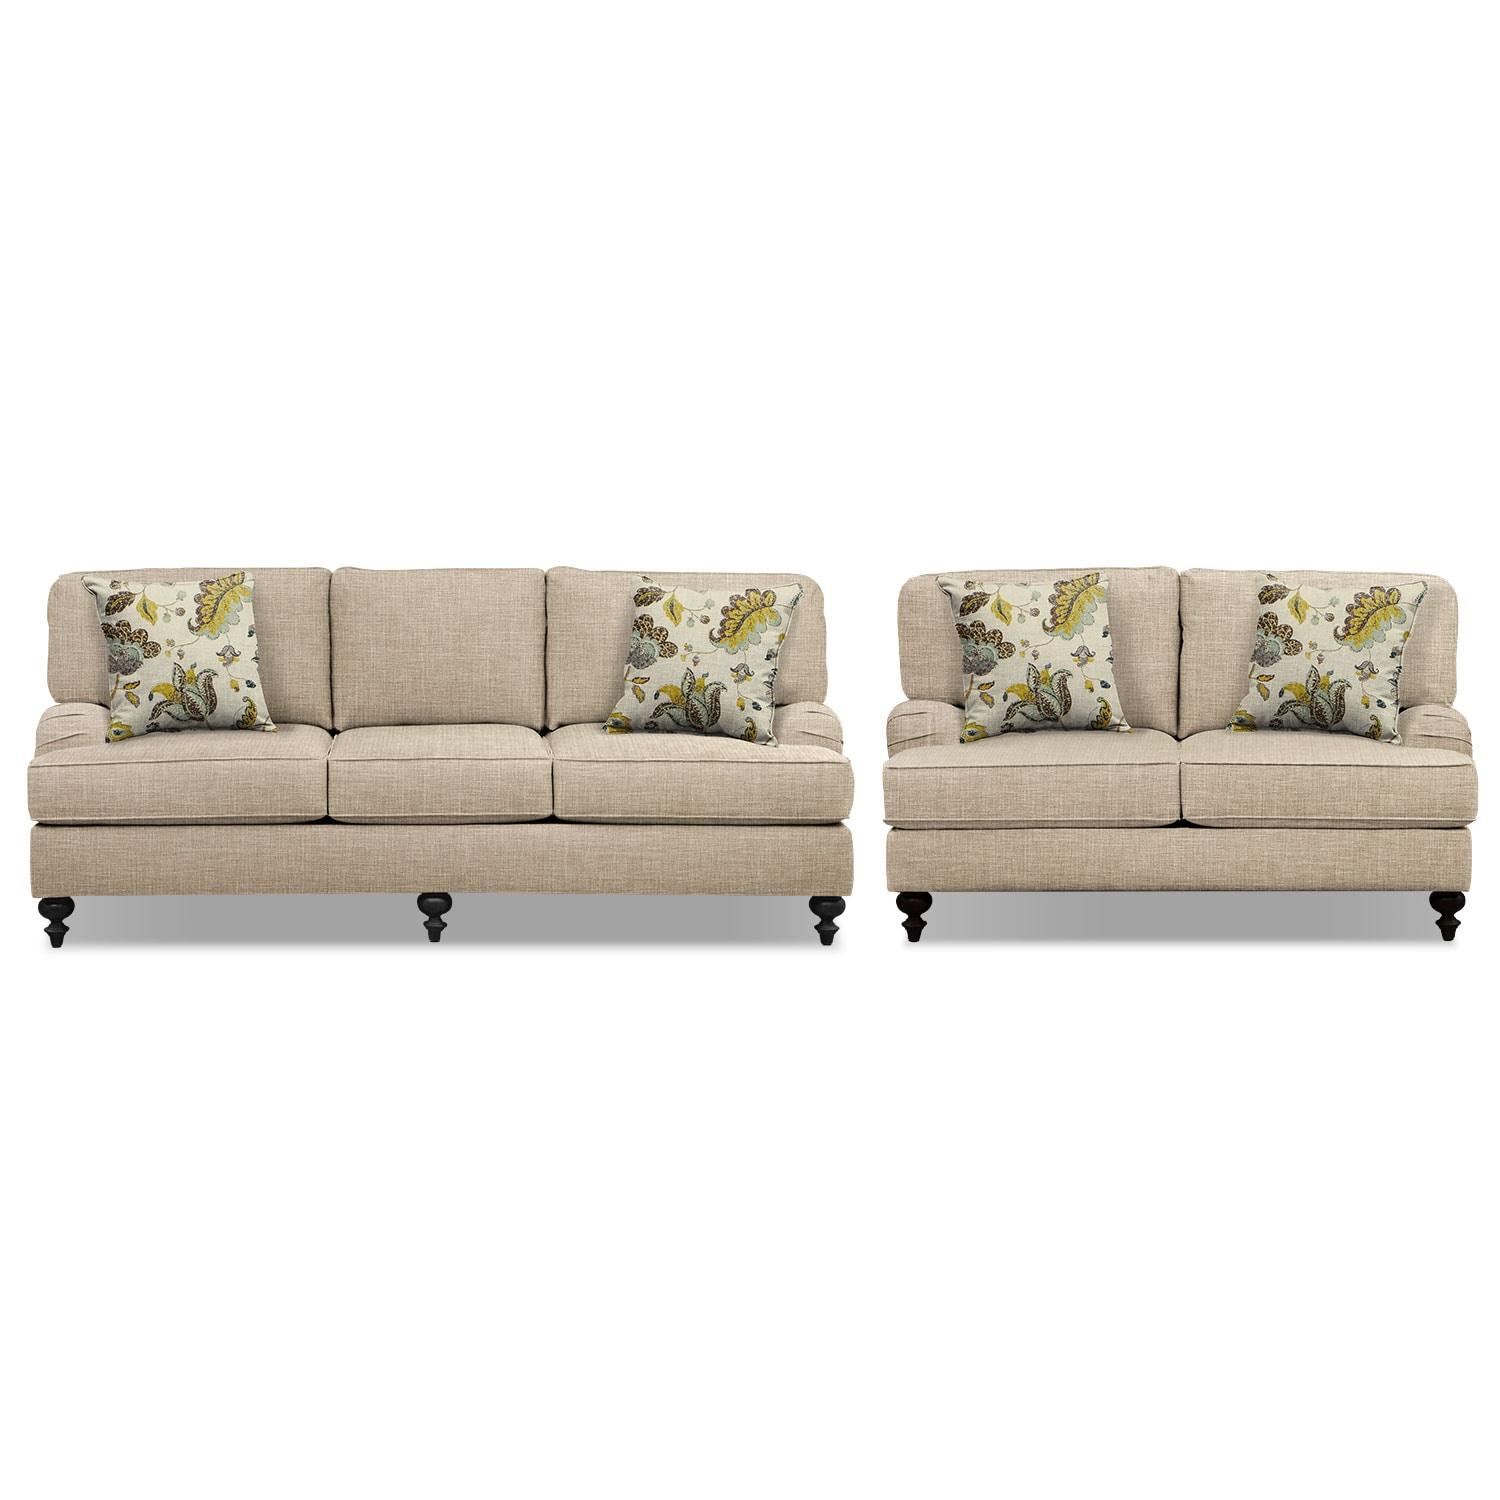 "Living Room Furniture - Avery Taupe 86"" Sofa and 62"" Sofa Set"